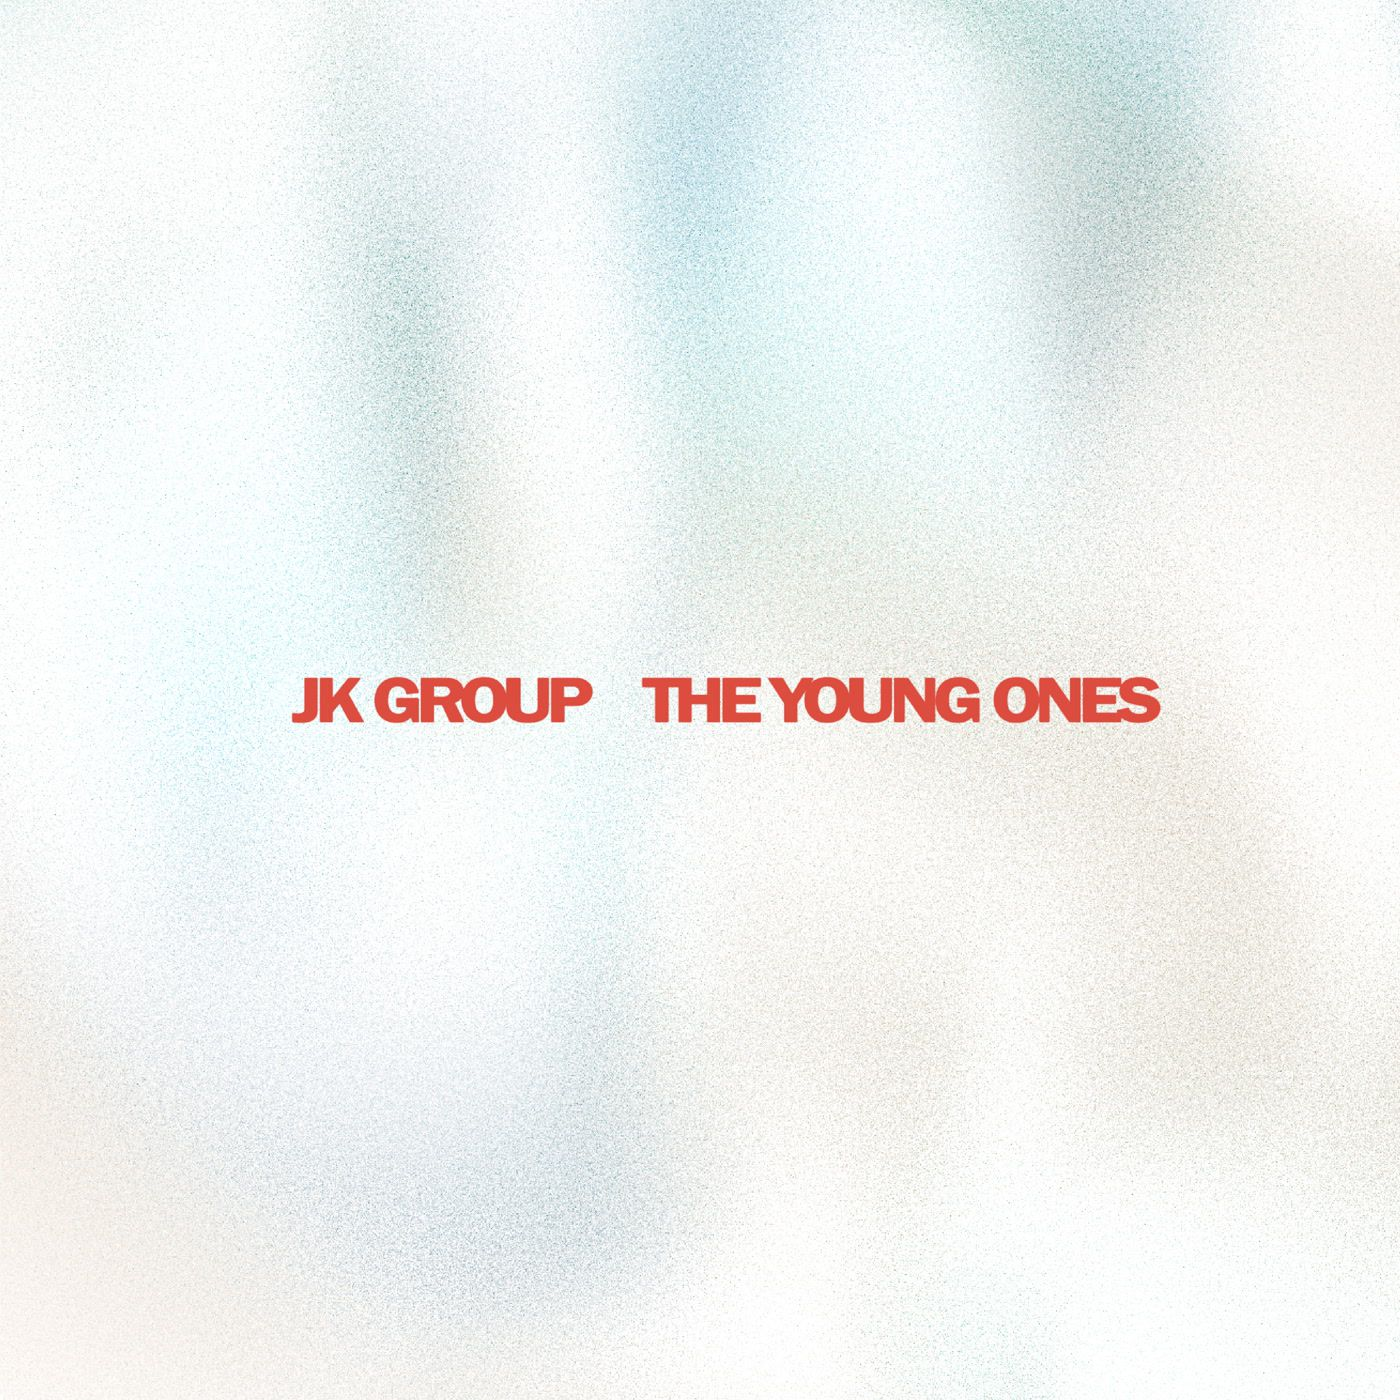 JK Group - The Young Ones